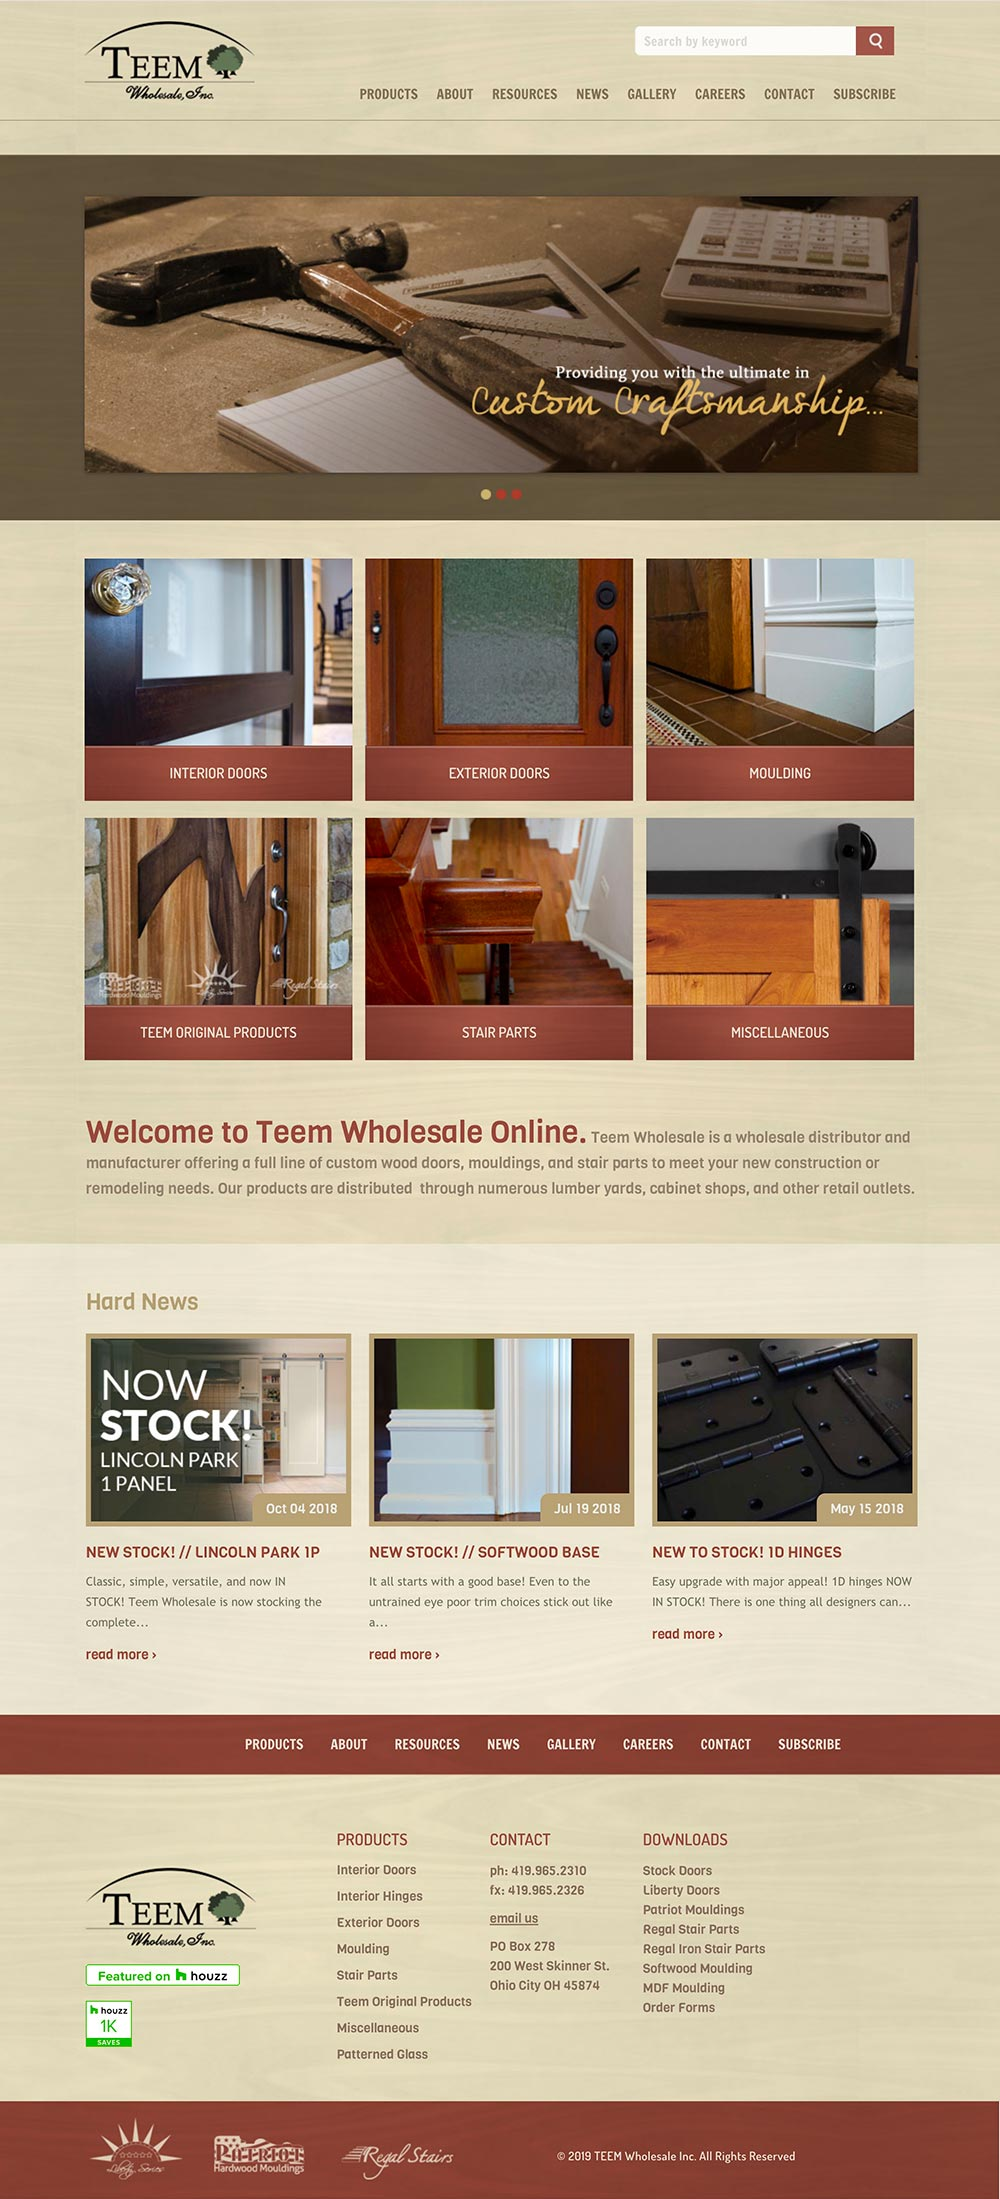 Screenshot of TEEM Wholesale homepage